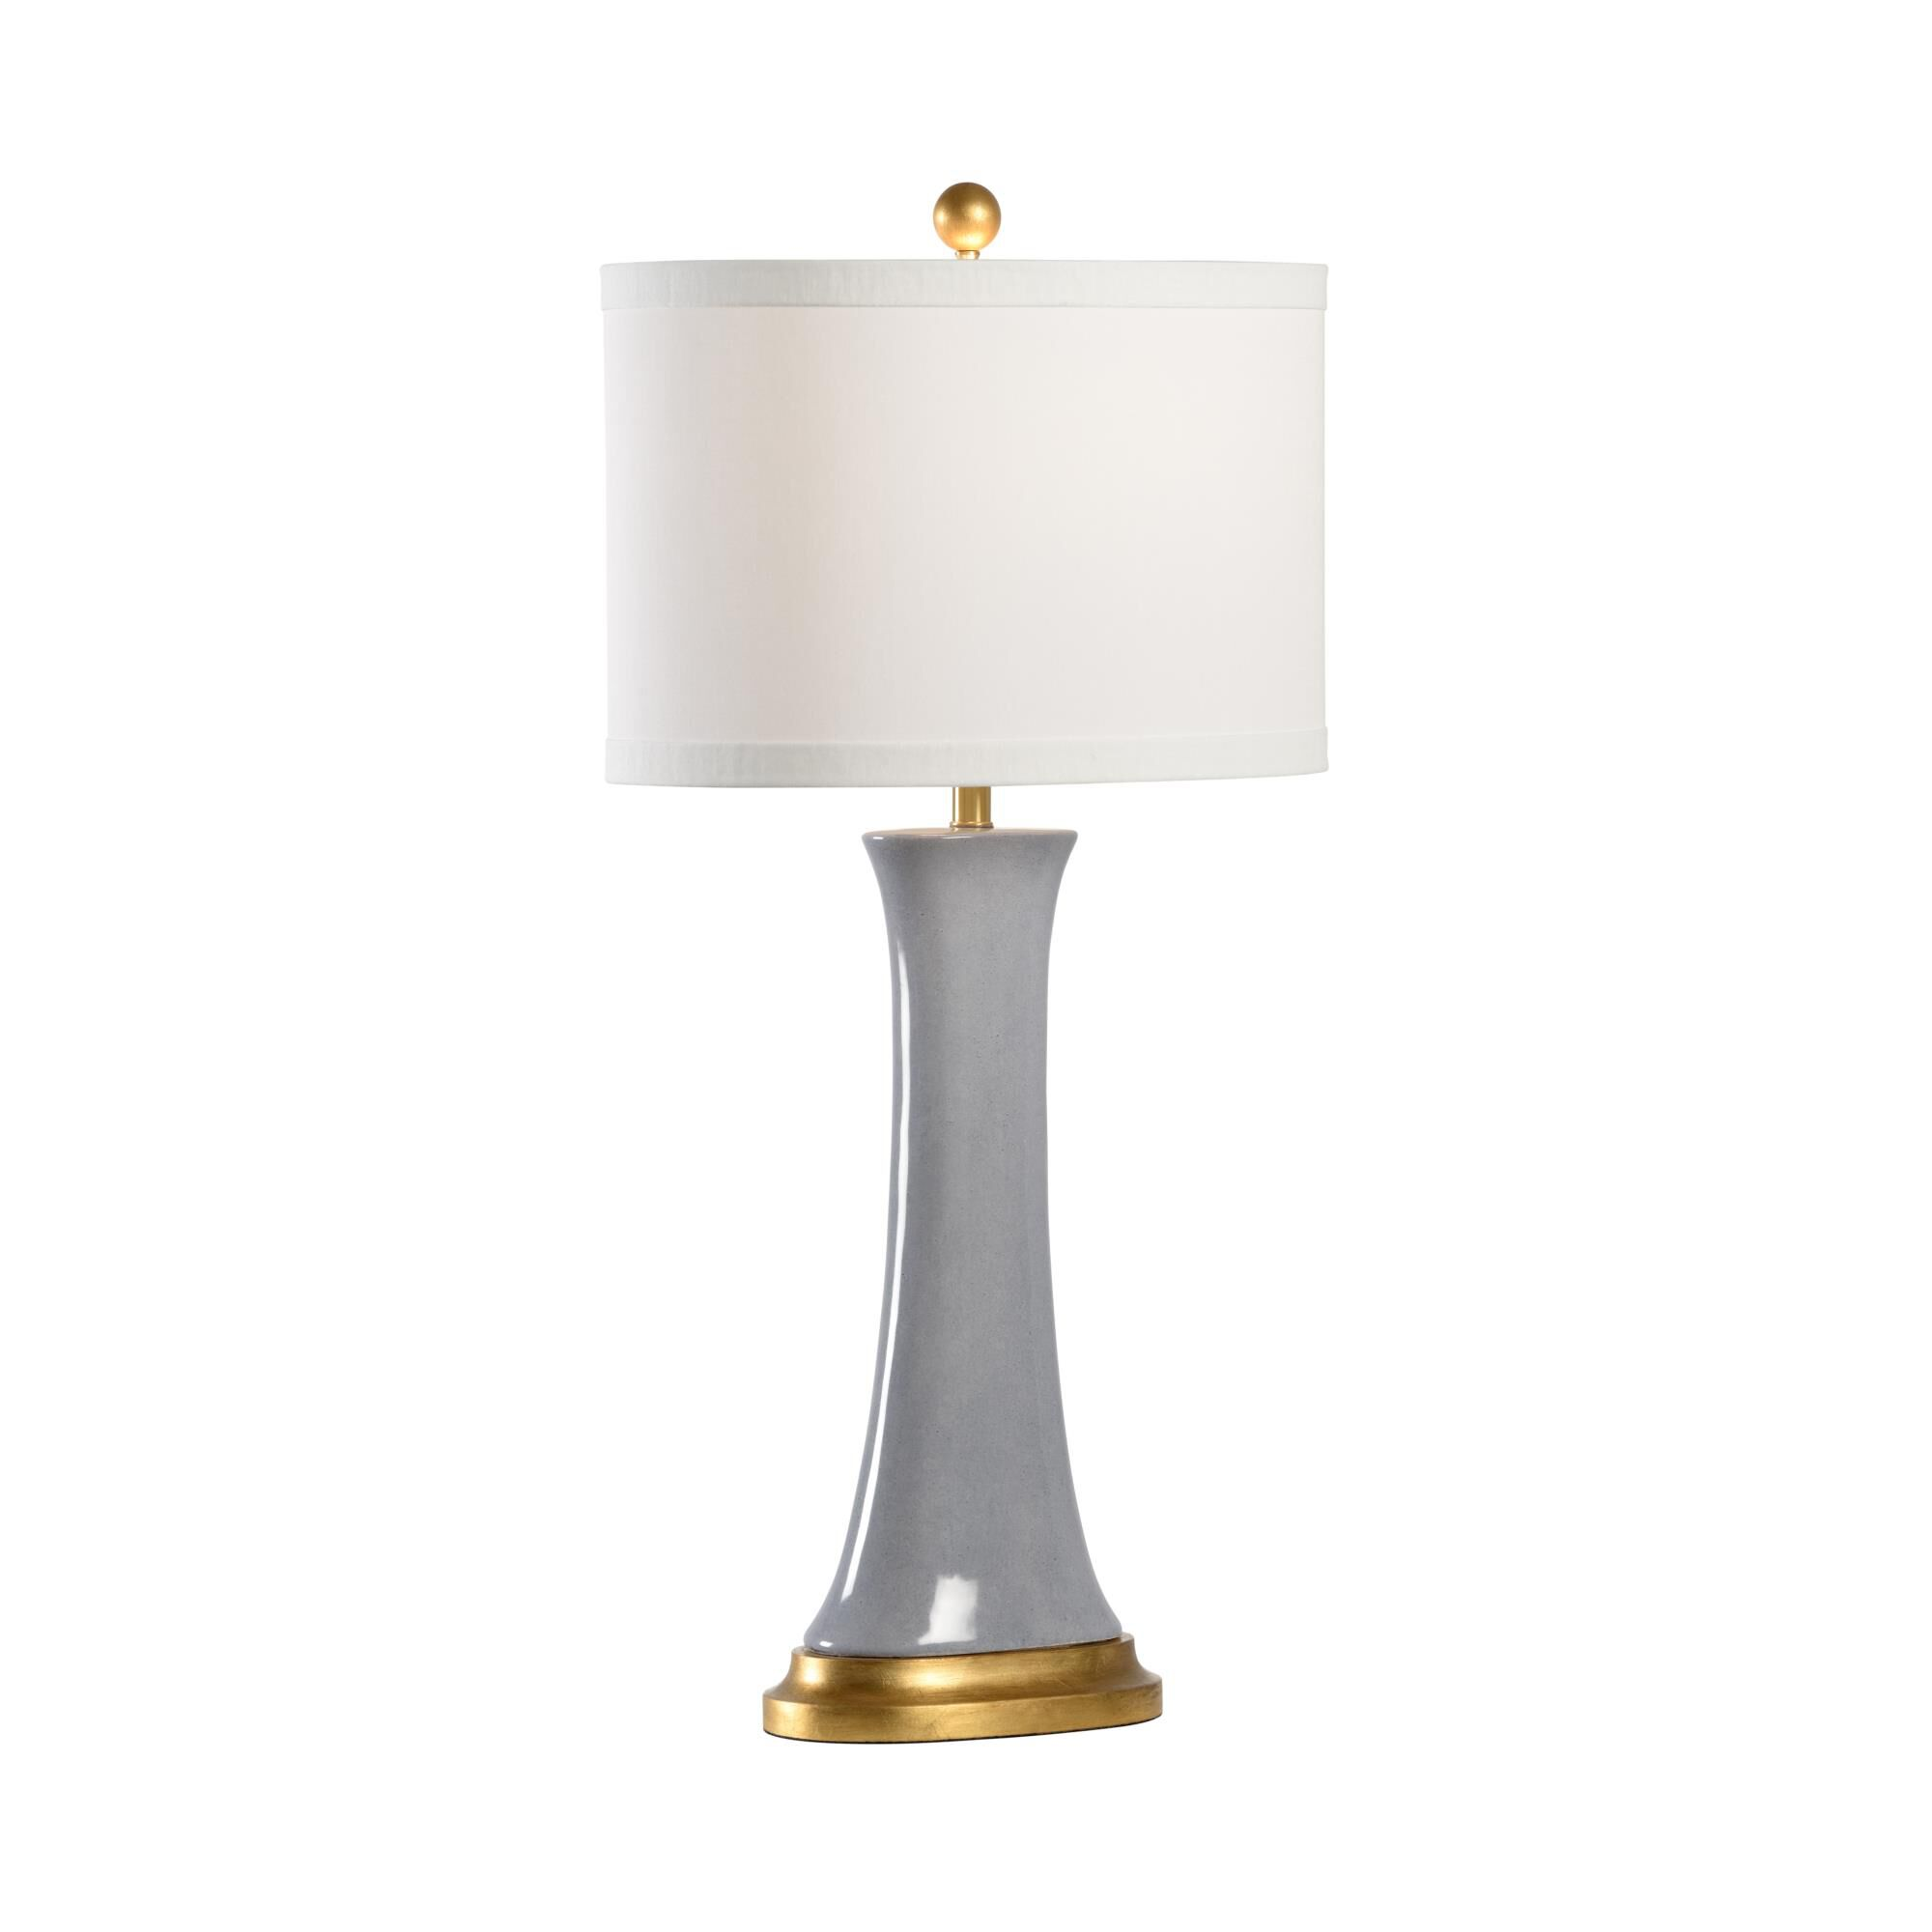 Chelsea House Hopper Table Lamp Hopper - 69502 Table Lamp